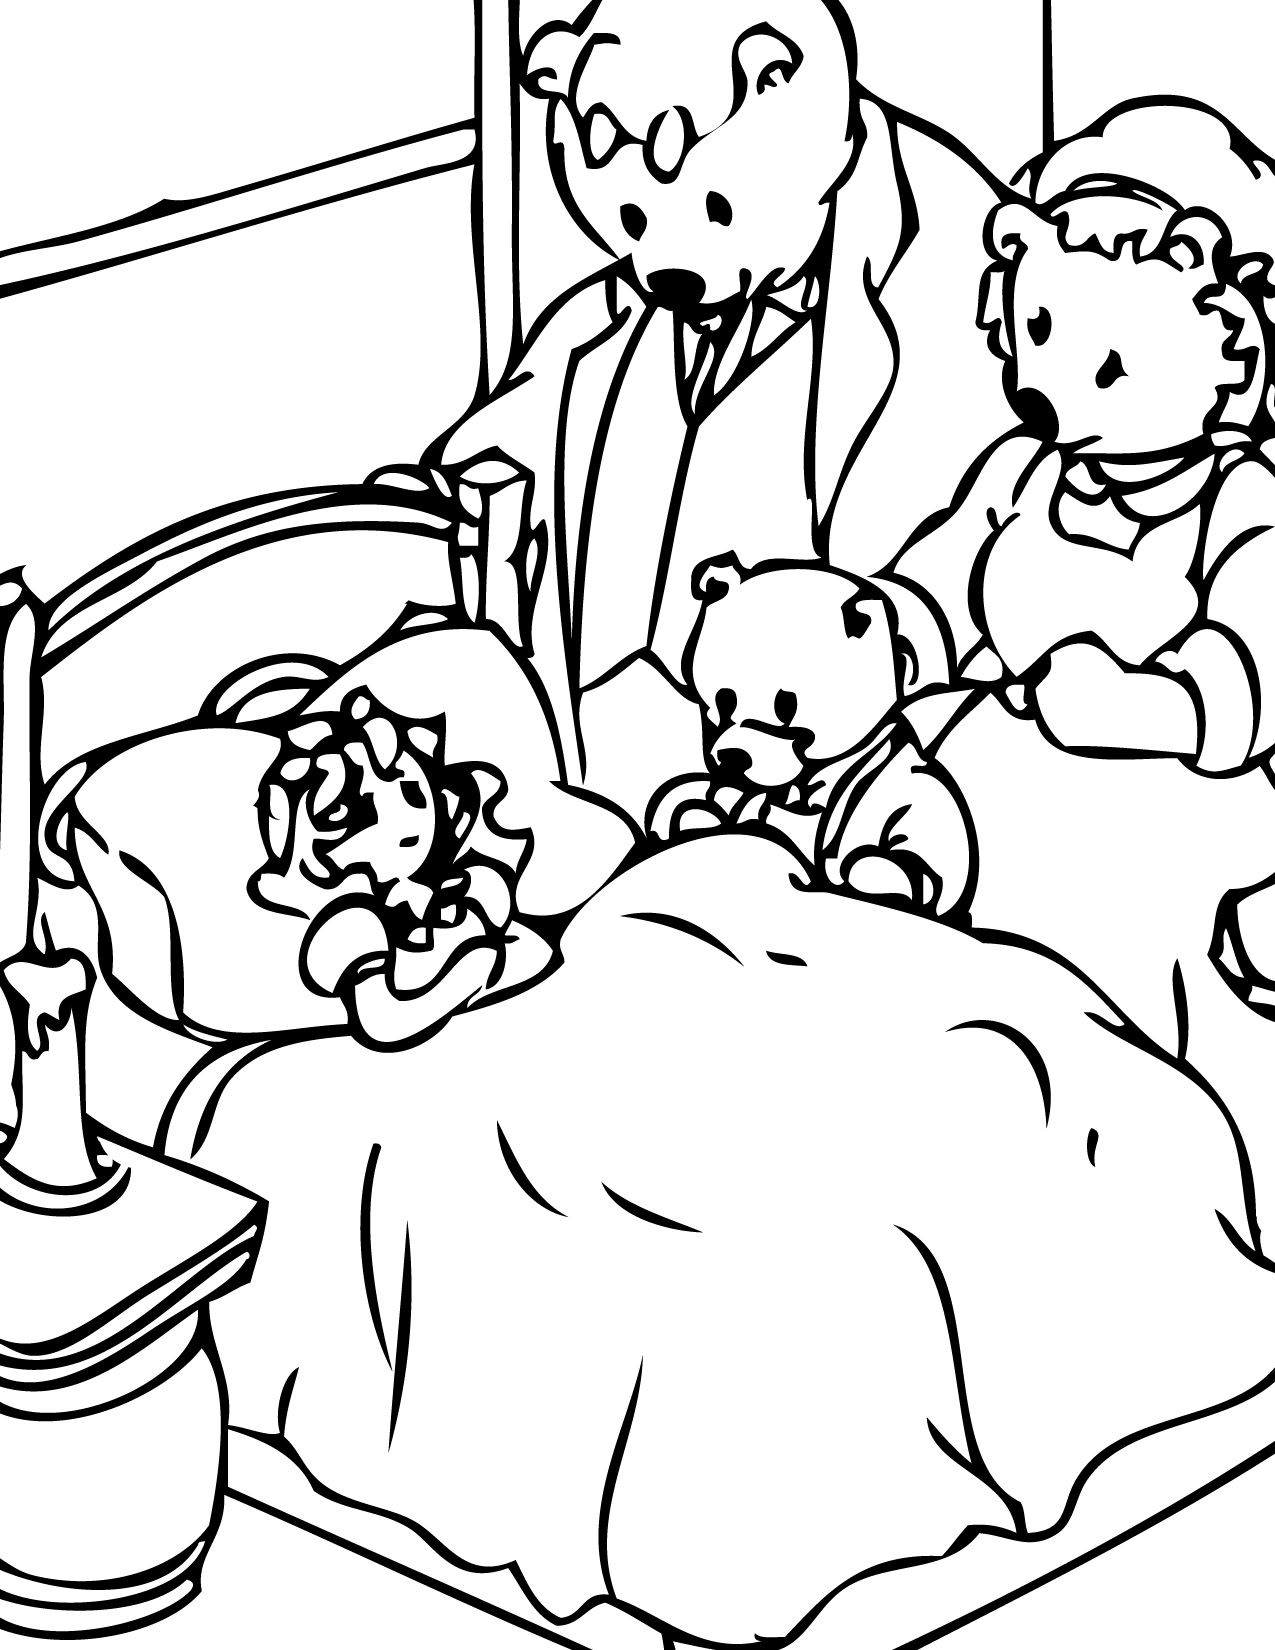 Goldilocks And The Three Bears Coloring Page Handipoints Bear Coloring Pages Goldilocks And The Three Bears Flag Coloring Pages